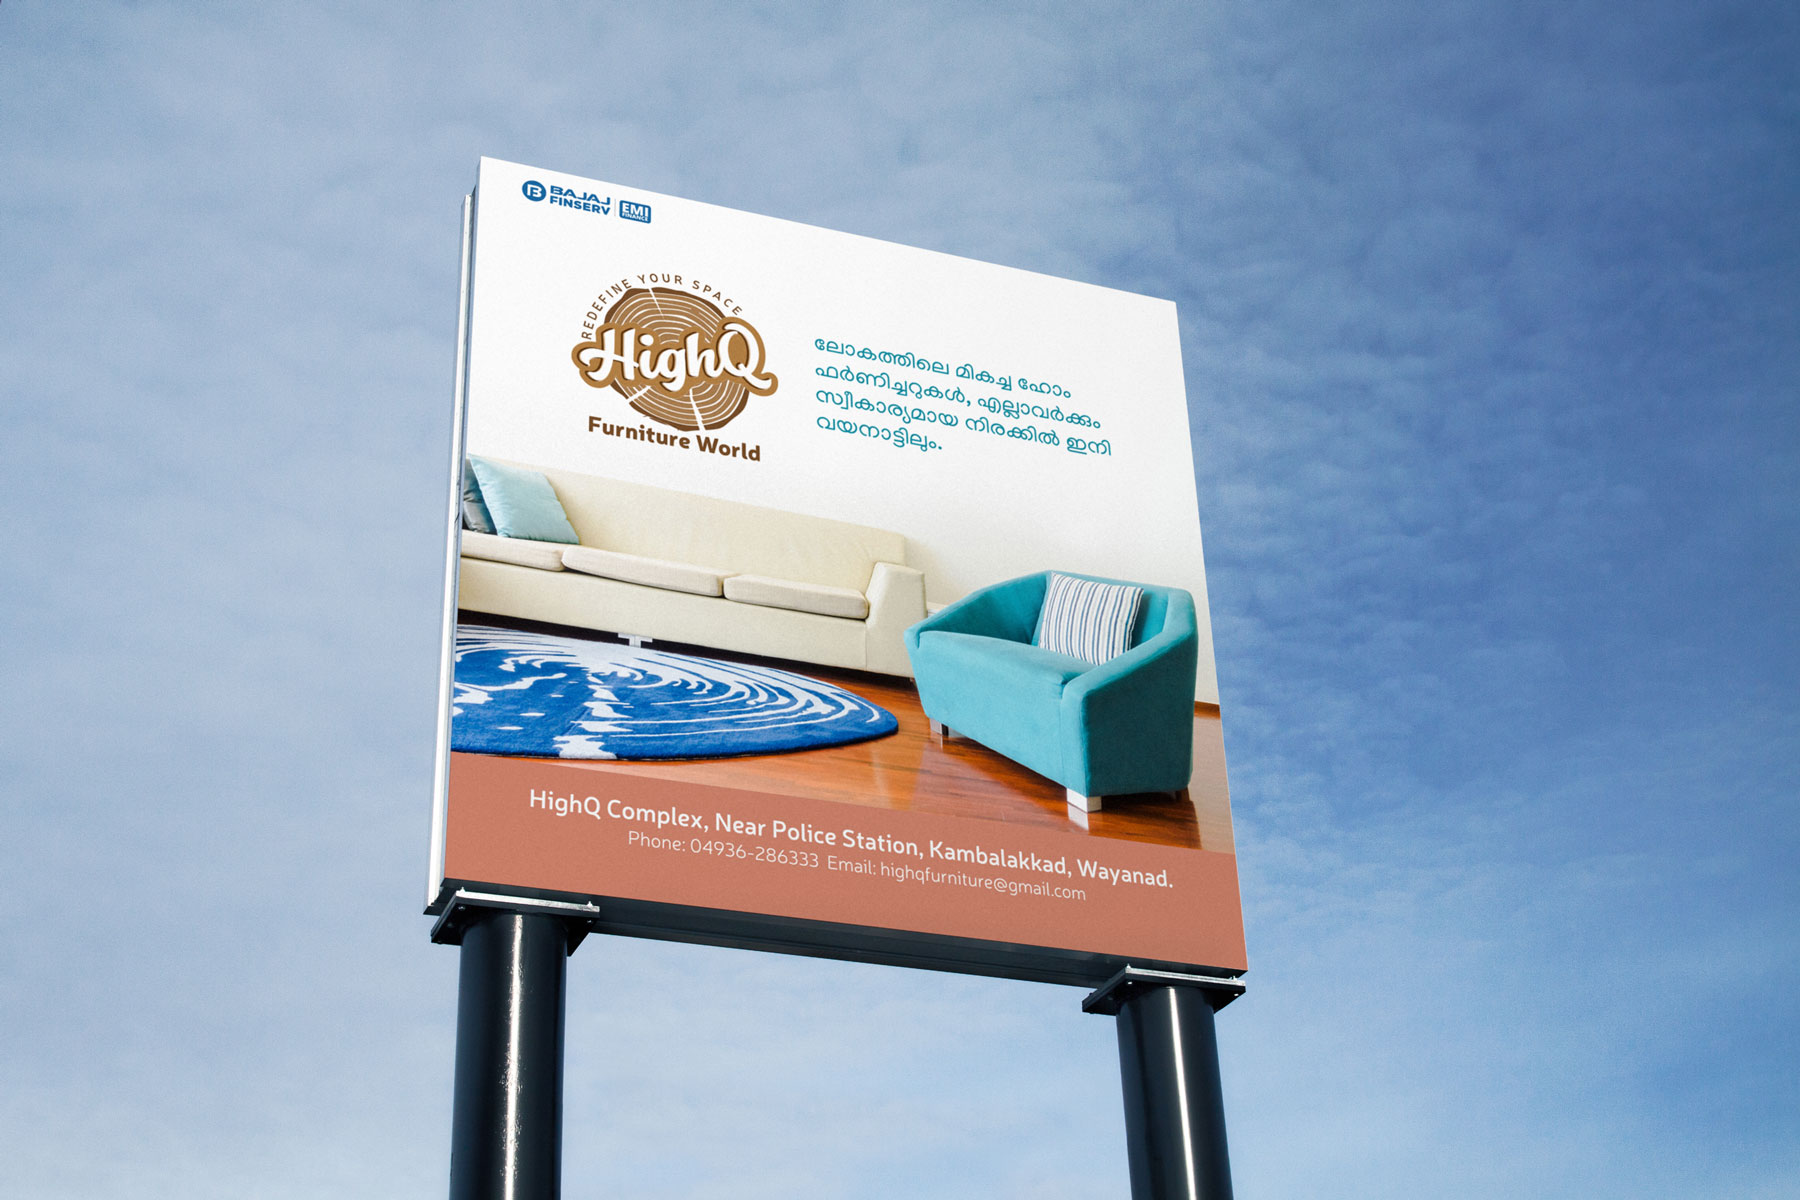 Hoarding for a furniture brand